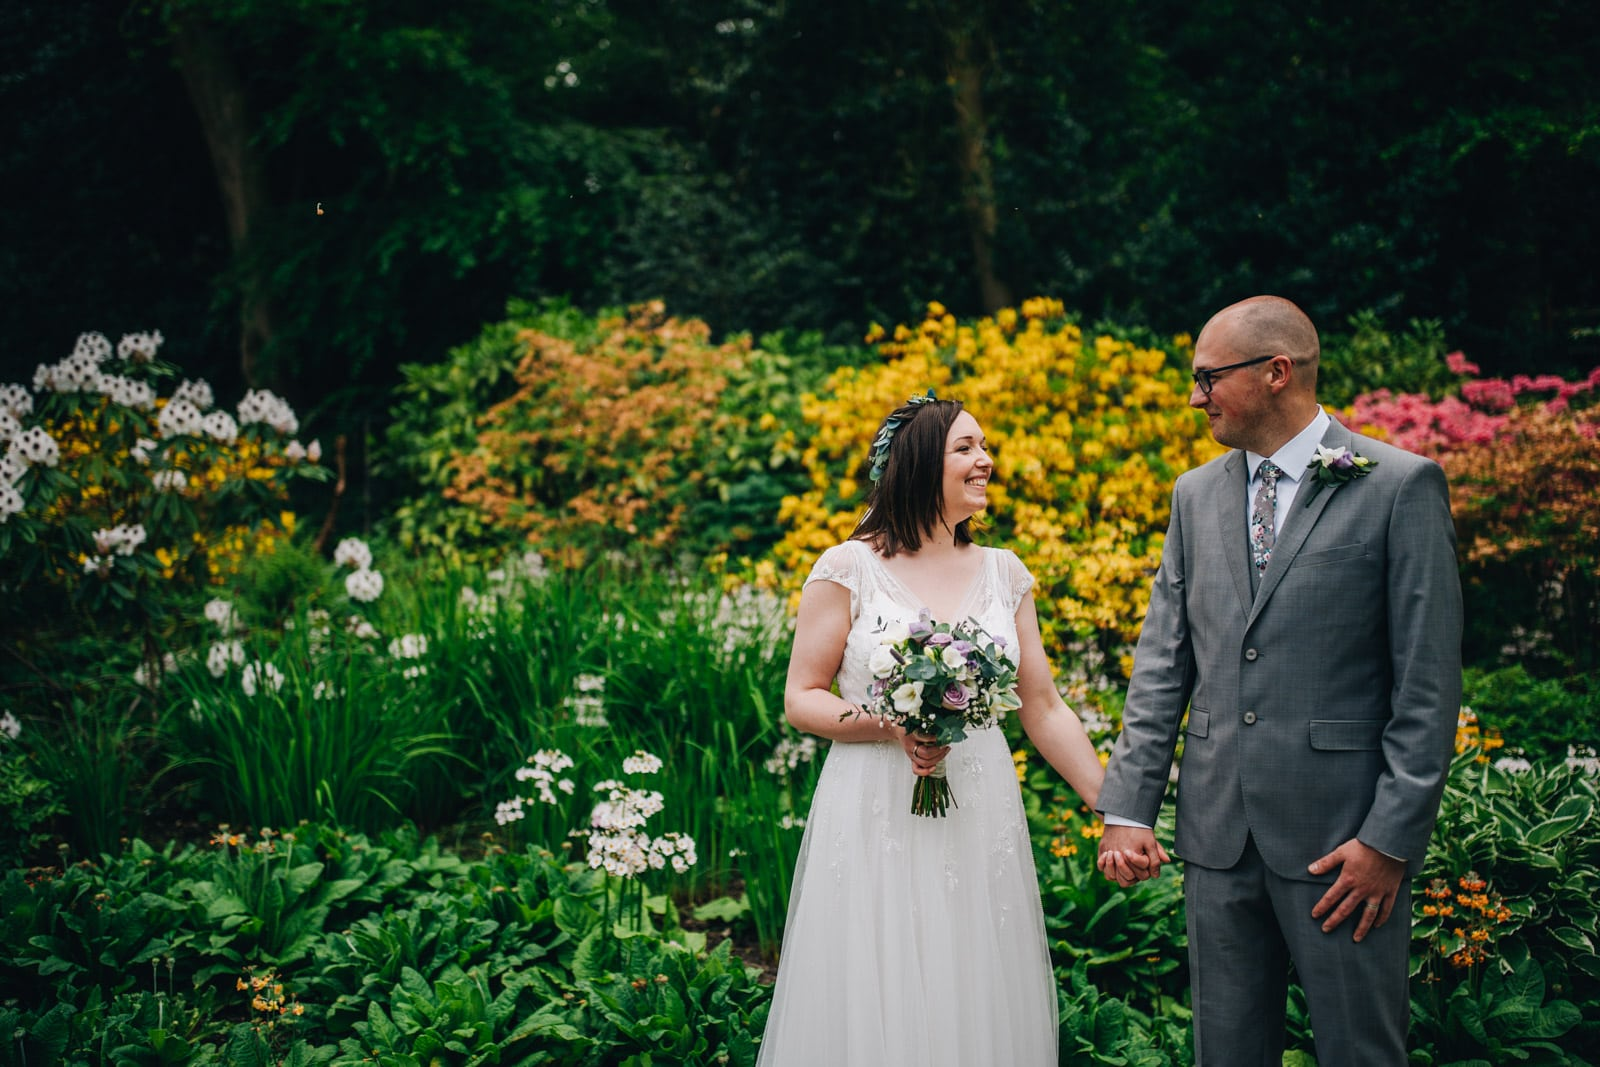 In the gardens at Quarry Bank Mill wedding